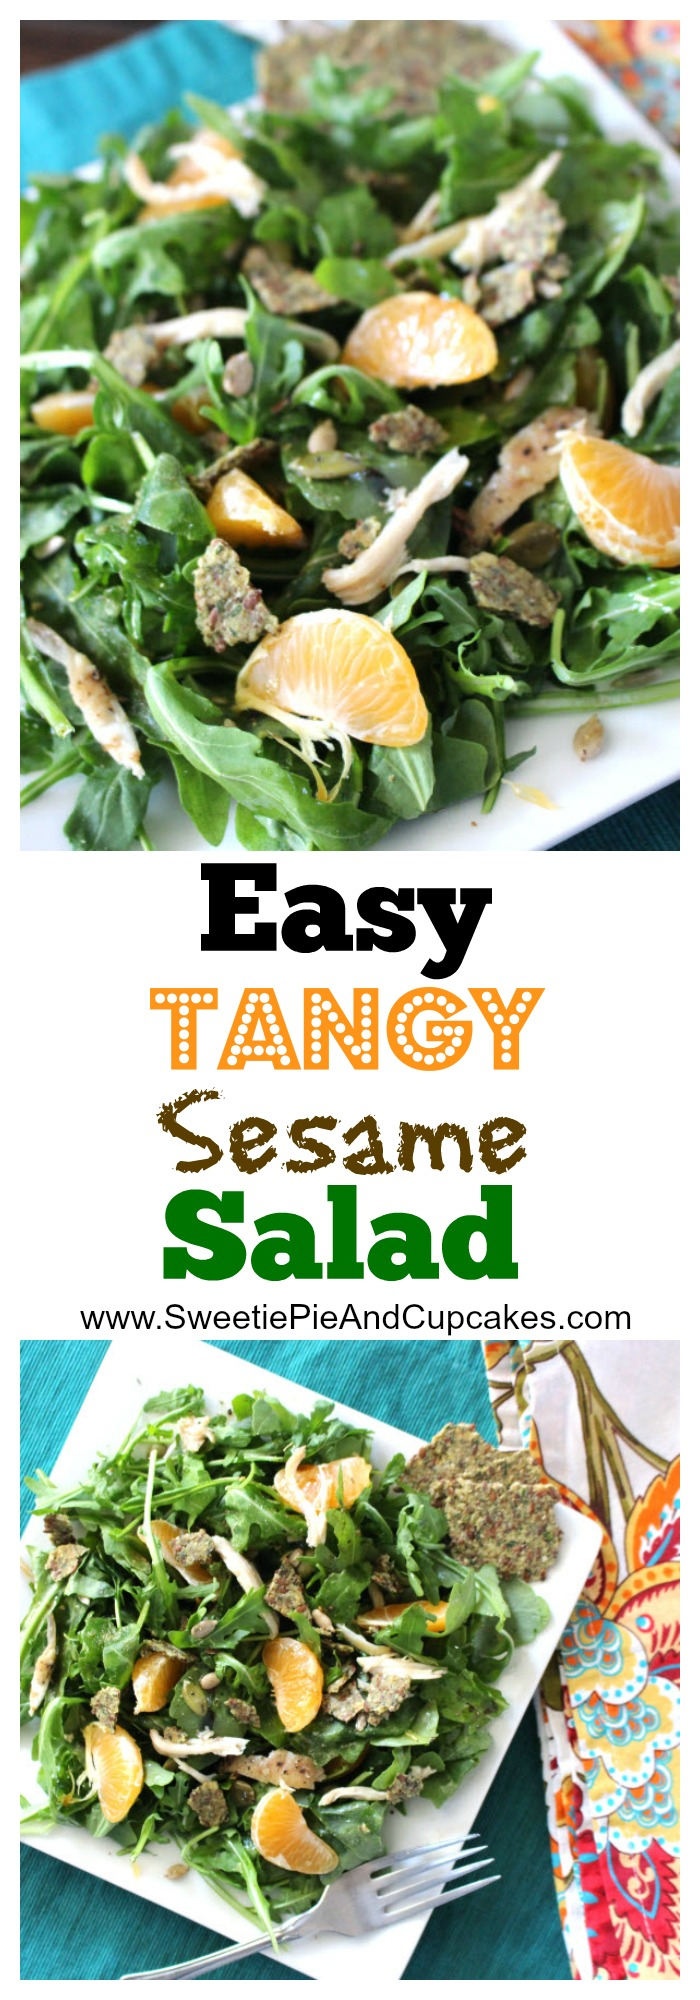 easy tangy sesame chicken salad